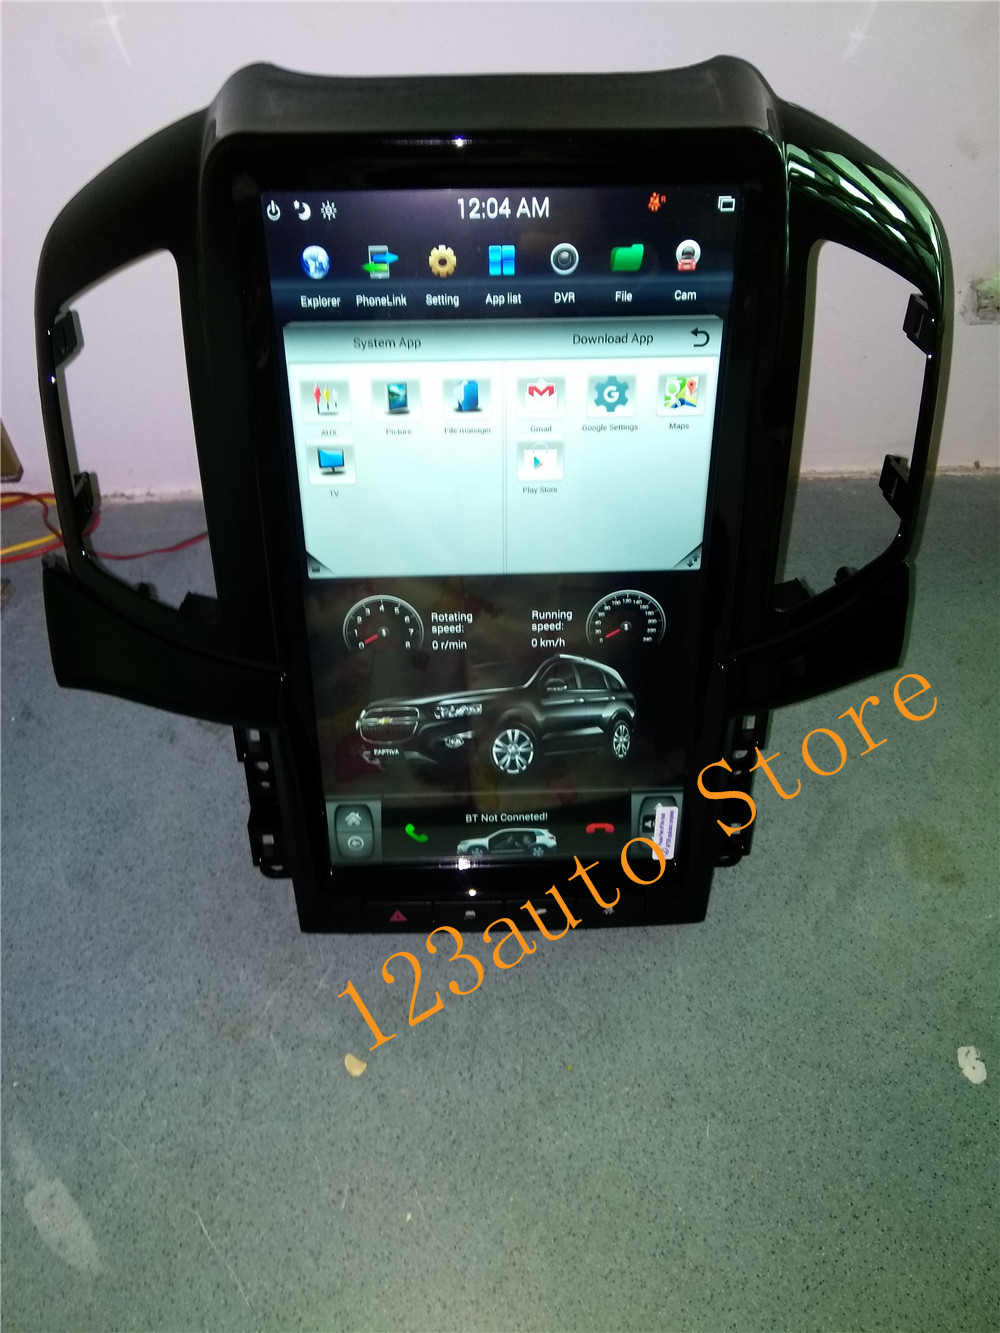 Autocardvdgps 13.6 vertical screen screen style android 7.1 auto car dvd gps player for  captiva 2013 2014 2015 2016 2017